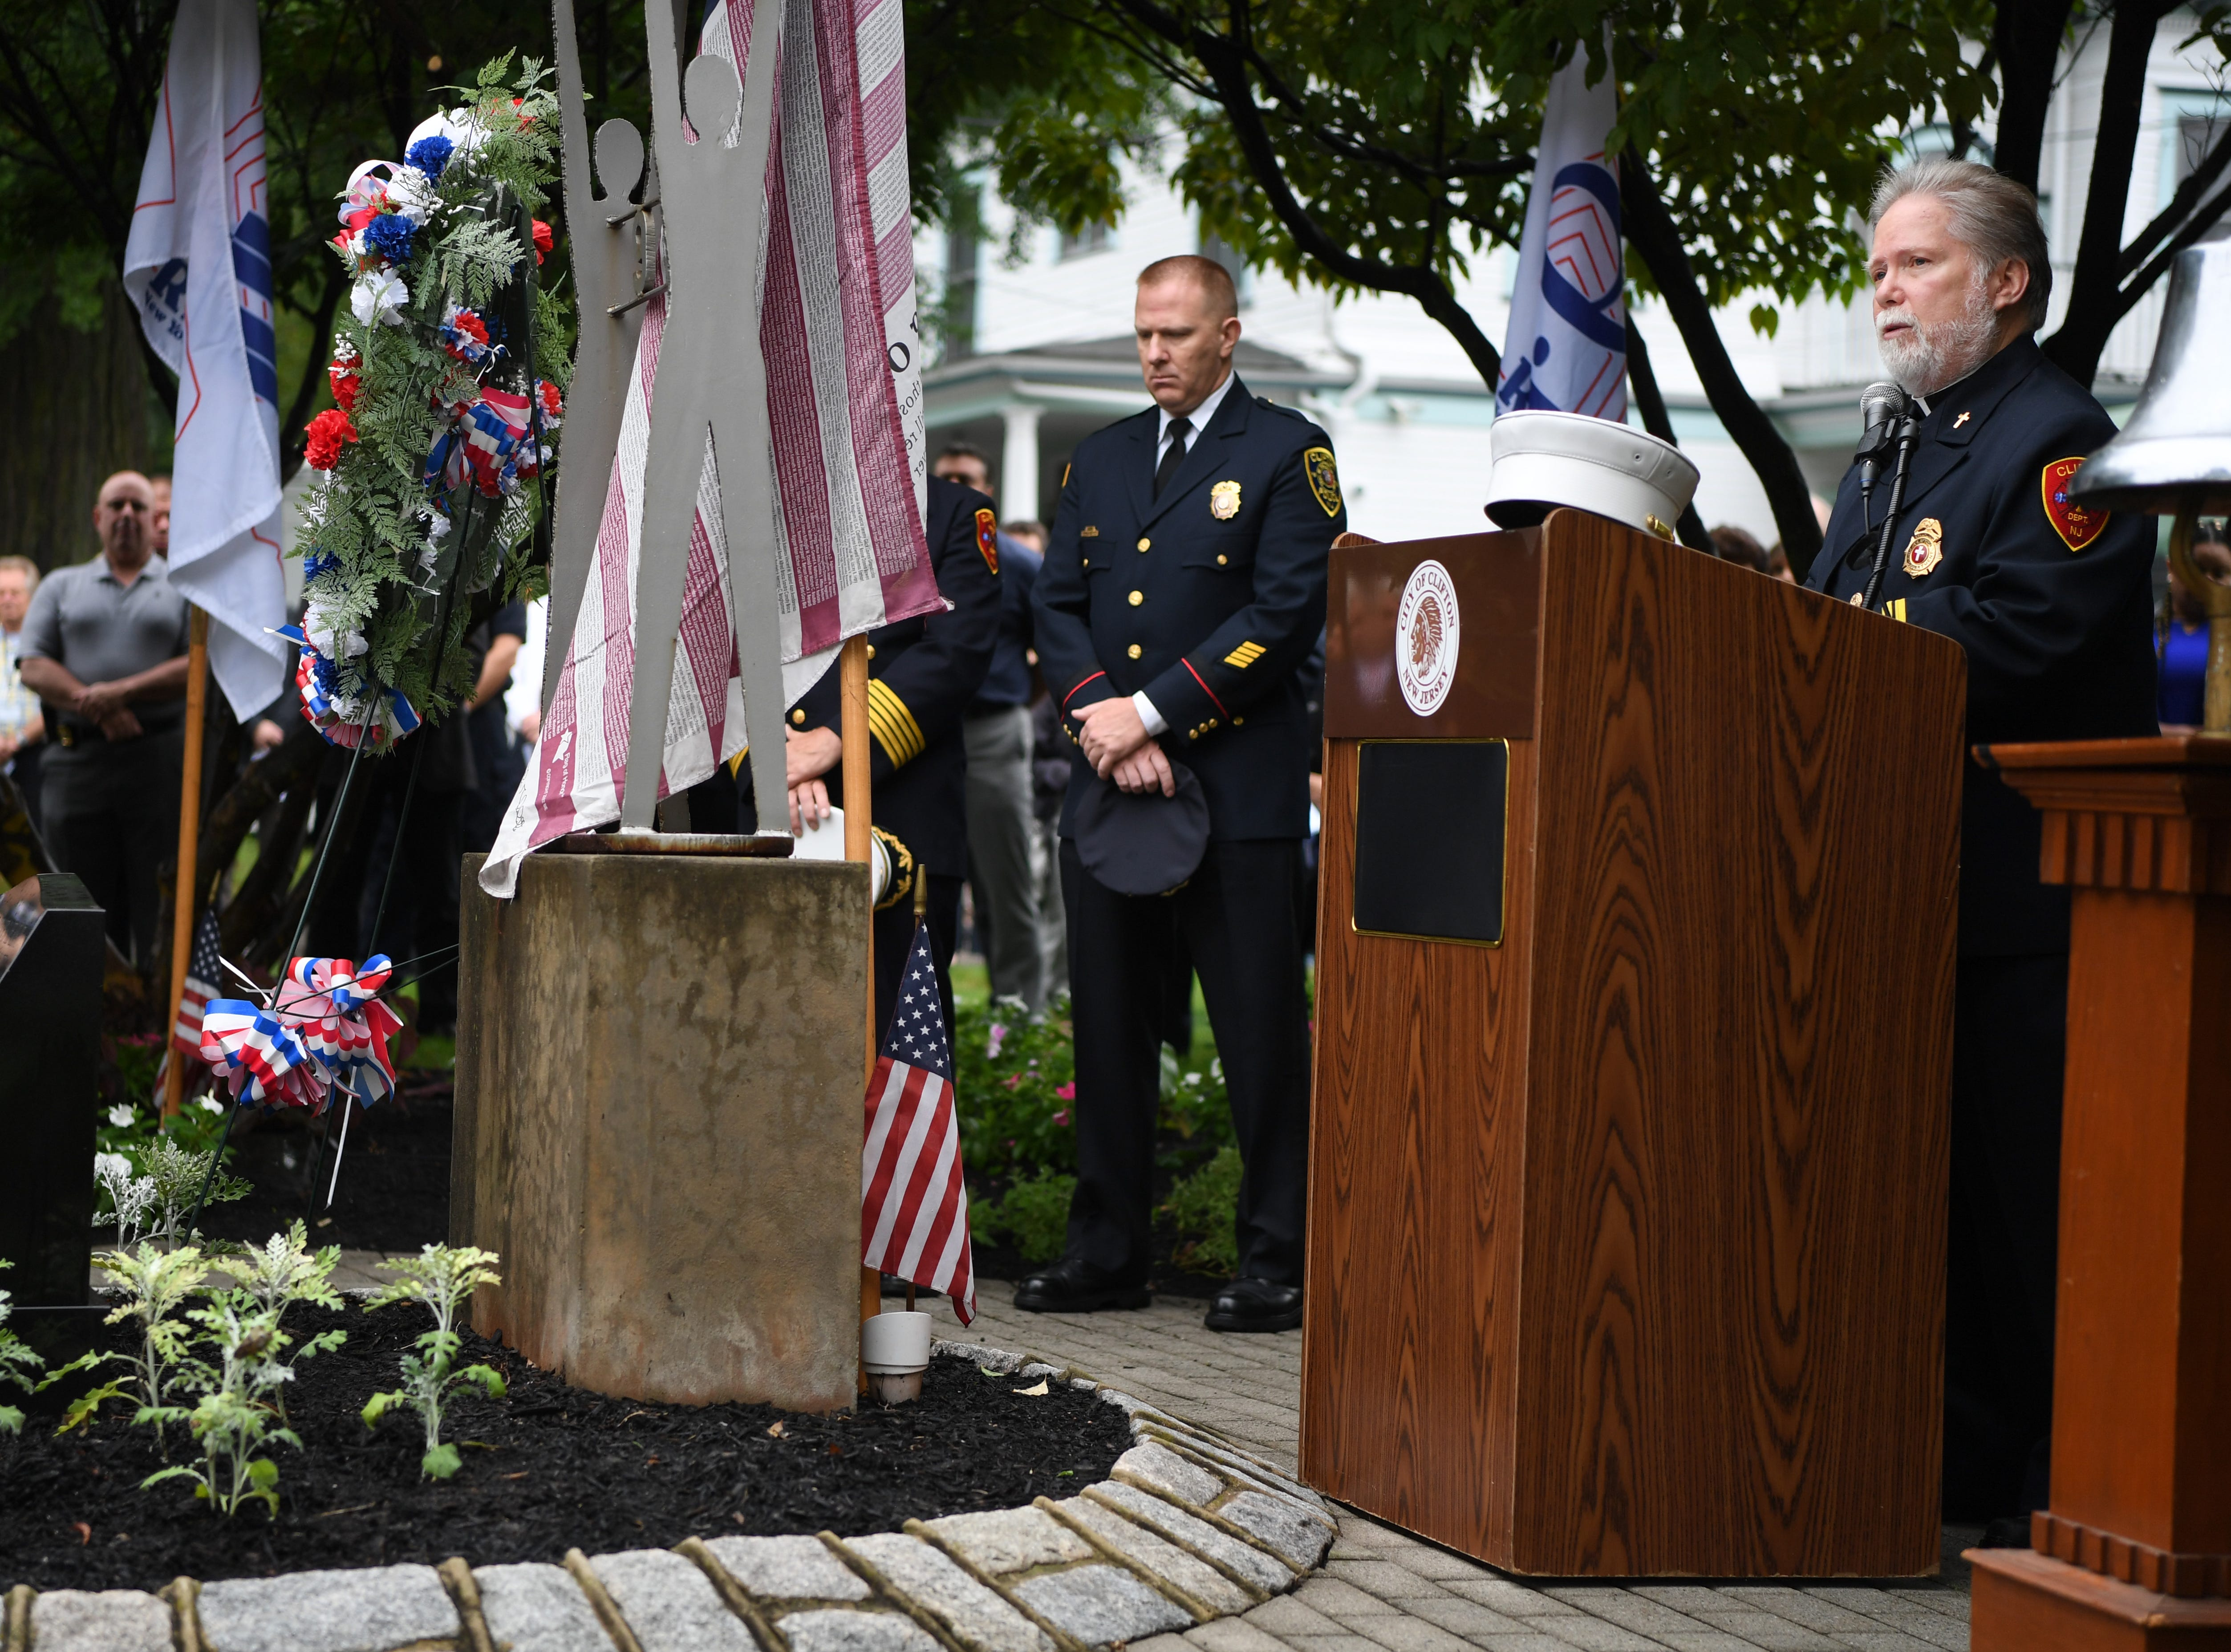 9/11 memorial service at Clifton City Hall on Tuesday, September 11, 2018. Fr. Alan Savitt gives an invocation.